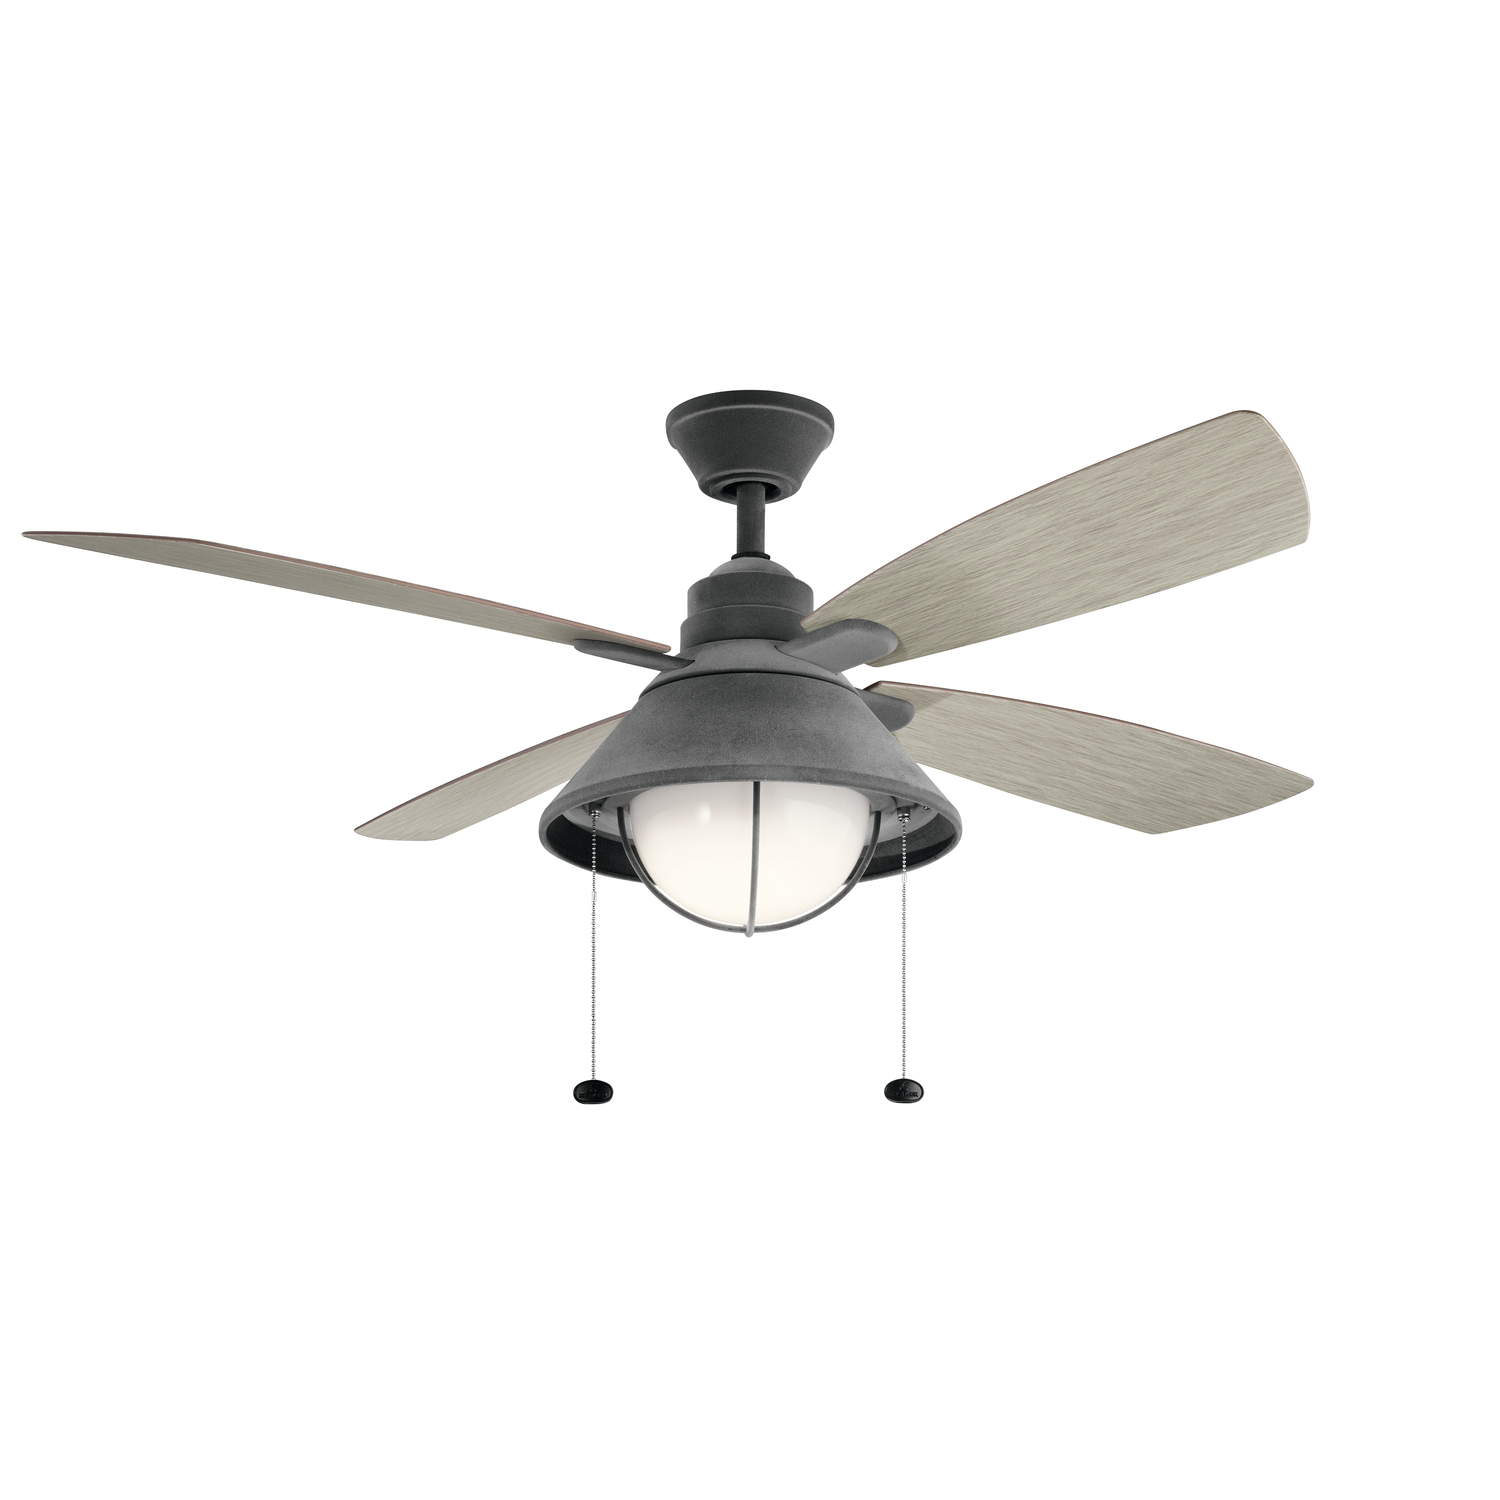 54 inchCeiling Fan from the Seaside collection by Kichler 310181WZC